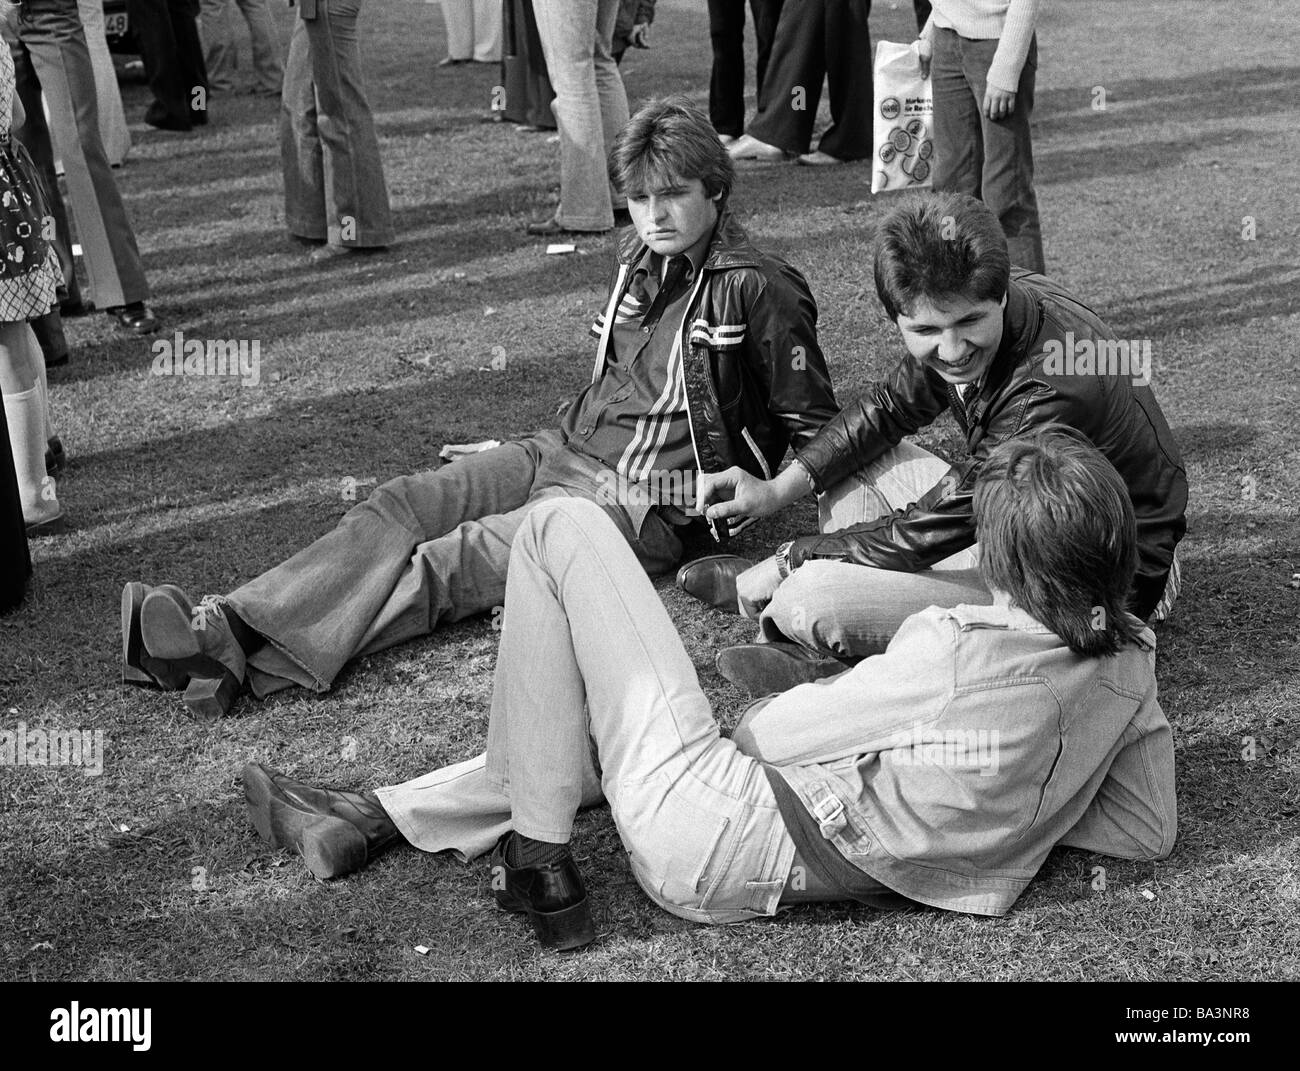 Seventies, black and white photo, people, three teenagers sit on a lawn, two are talking, one looks sad, outsider, - Stock Image